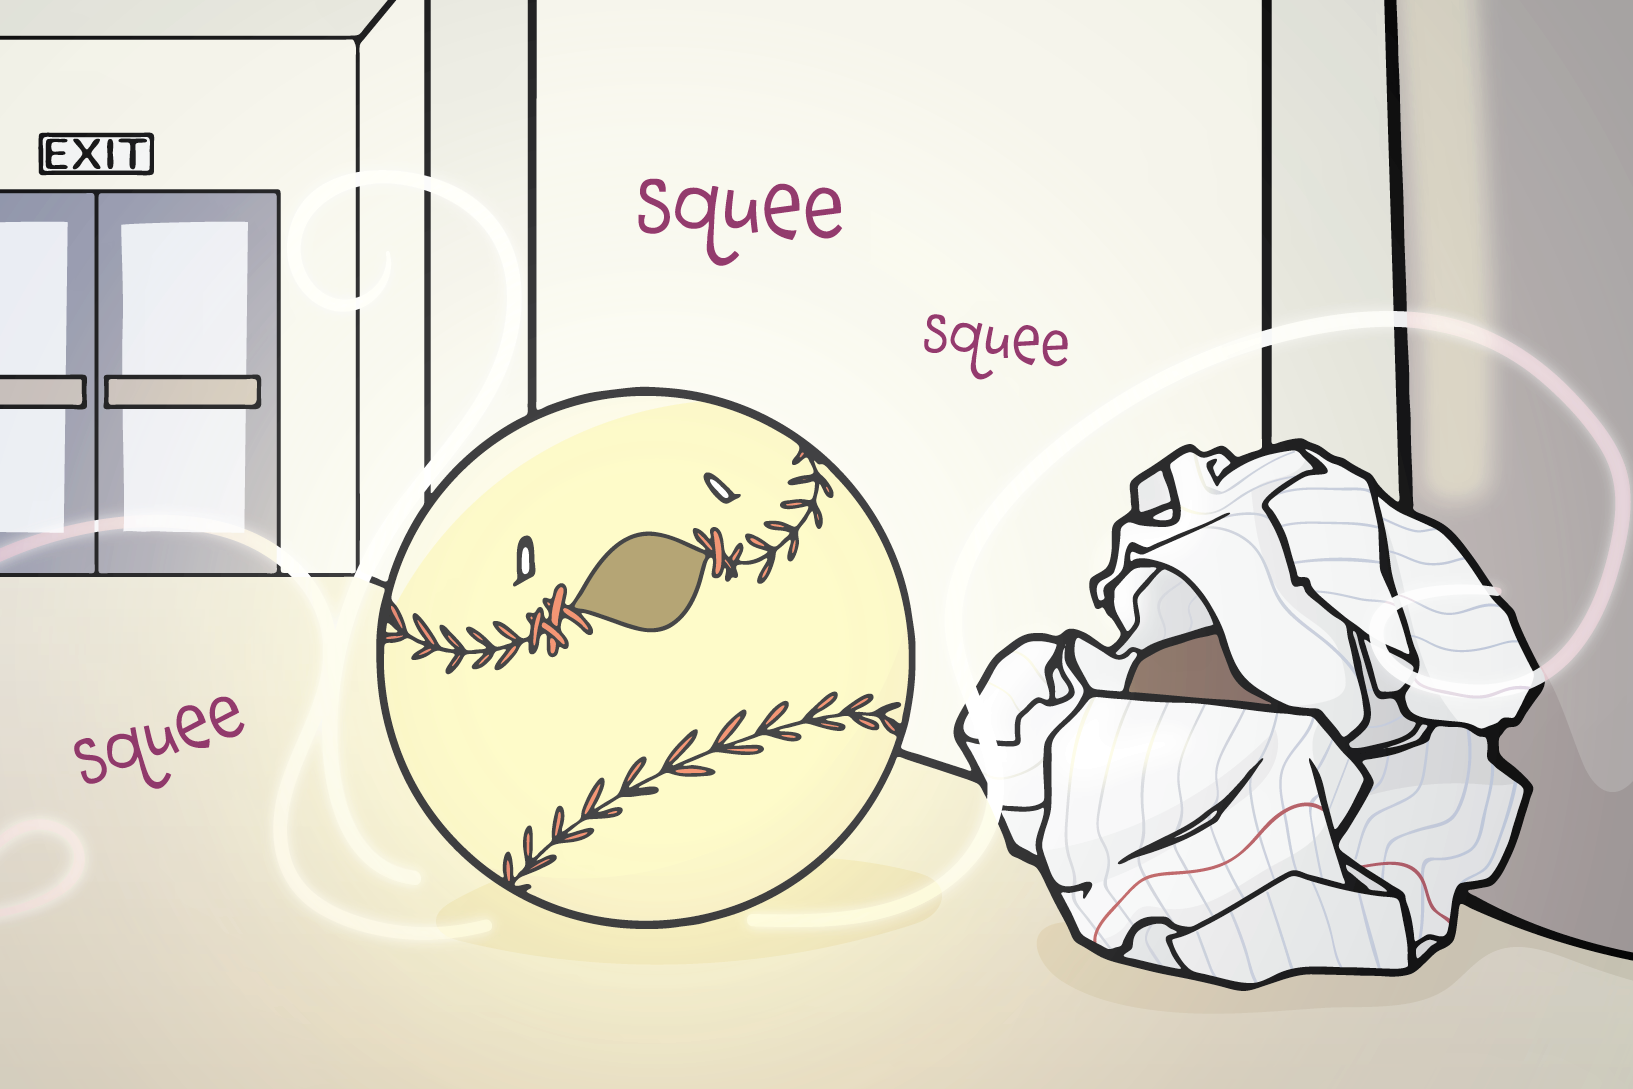 Chapter 4: Play Ball! - The magical crew wants to put an end to the Breaking Ball, and Basil is the only one (literally) standing in their way.